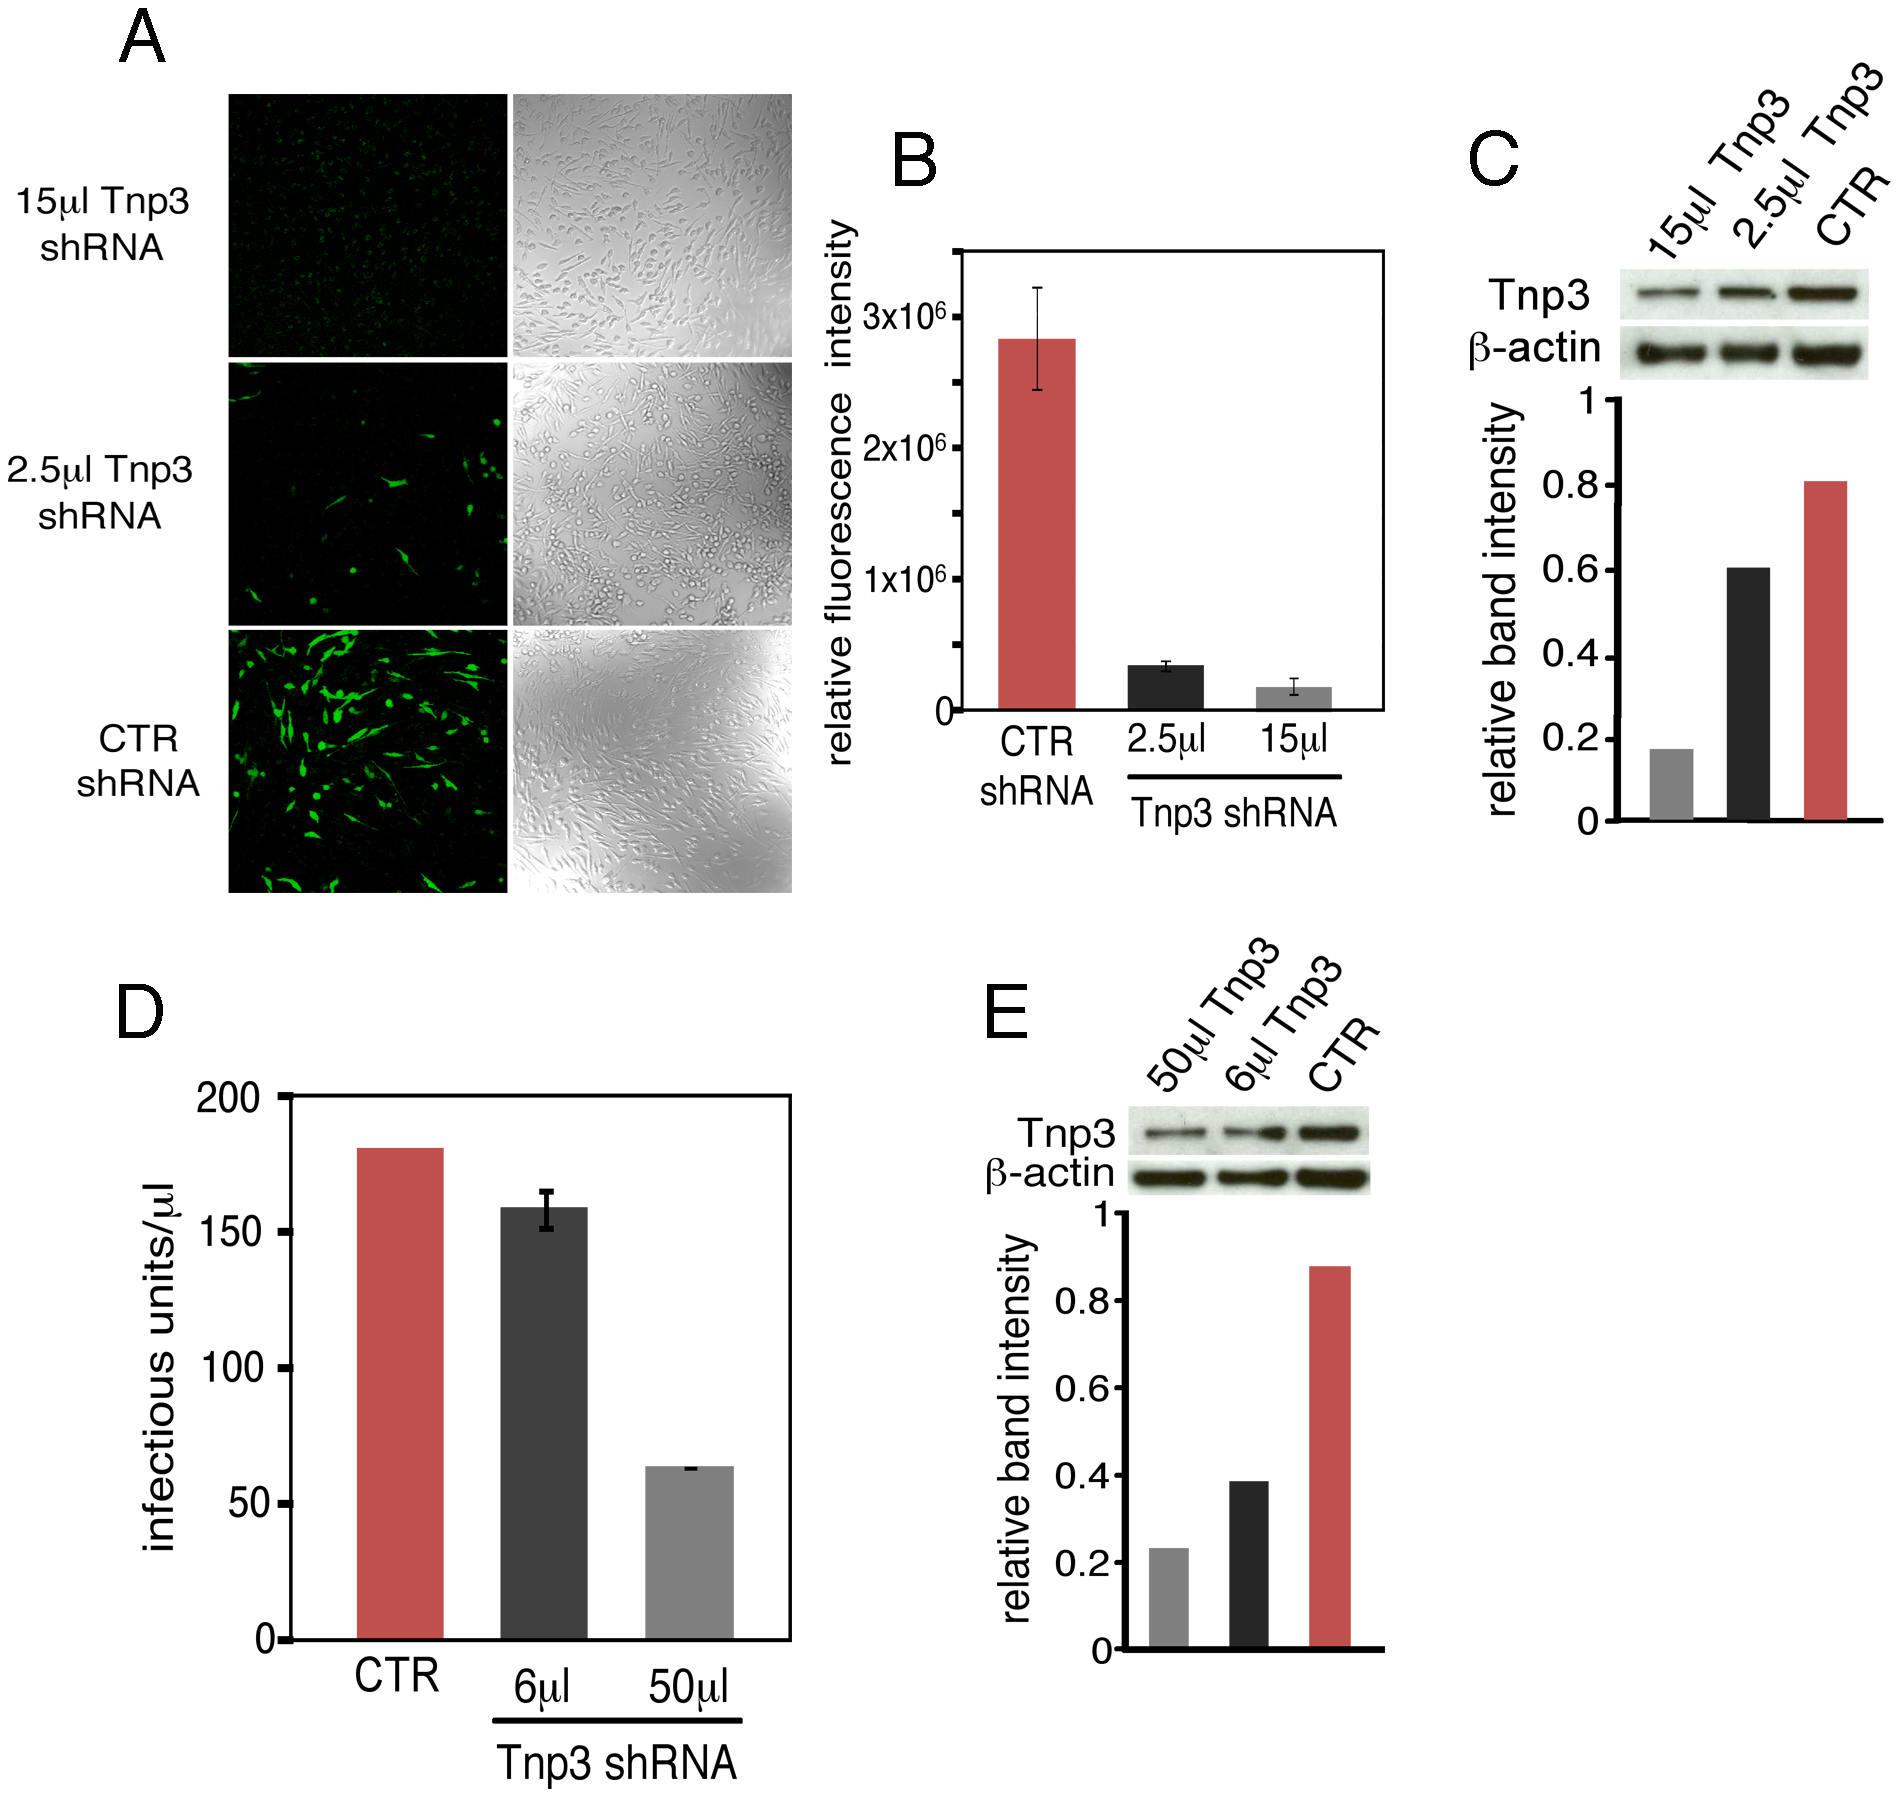 Tnp3 supports HIV-1 infection in human macrophages.